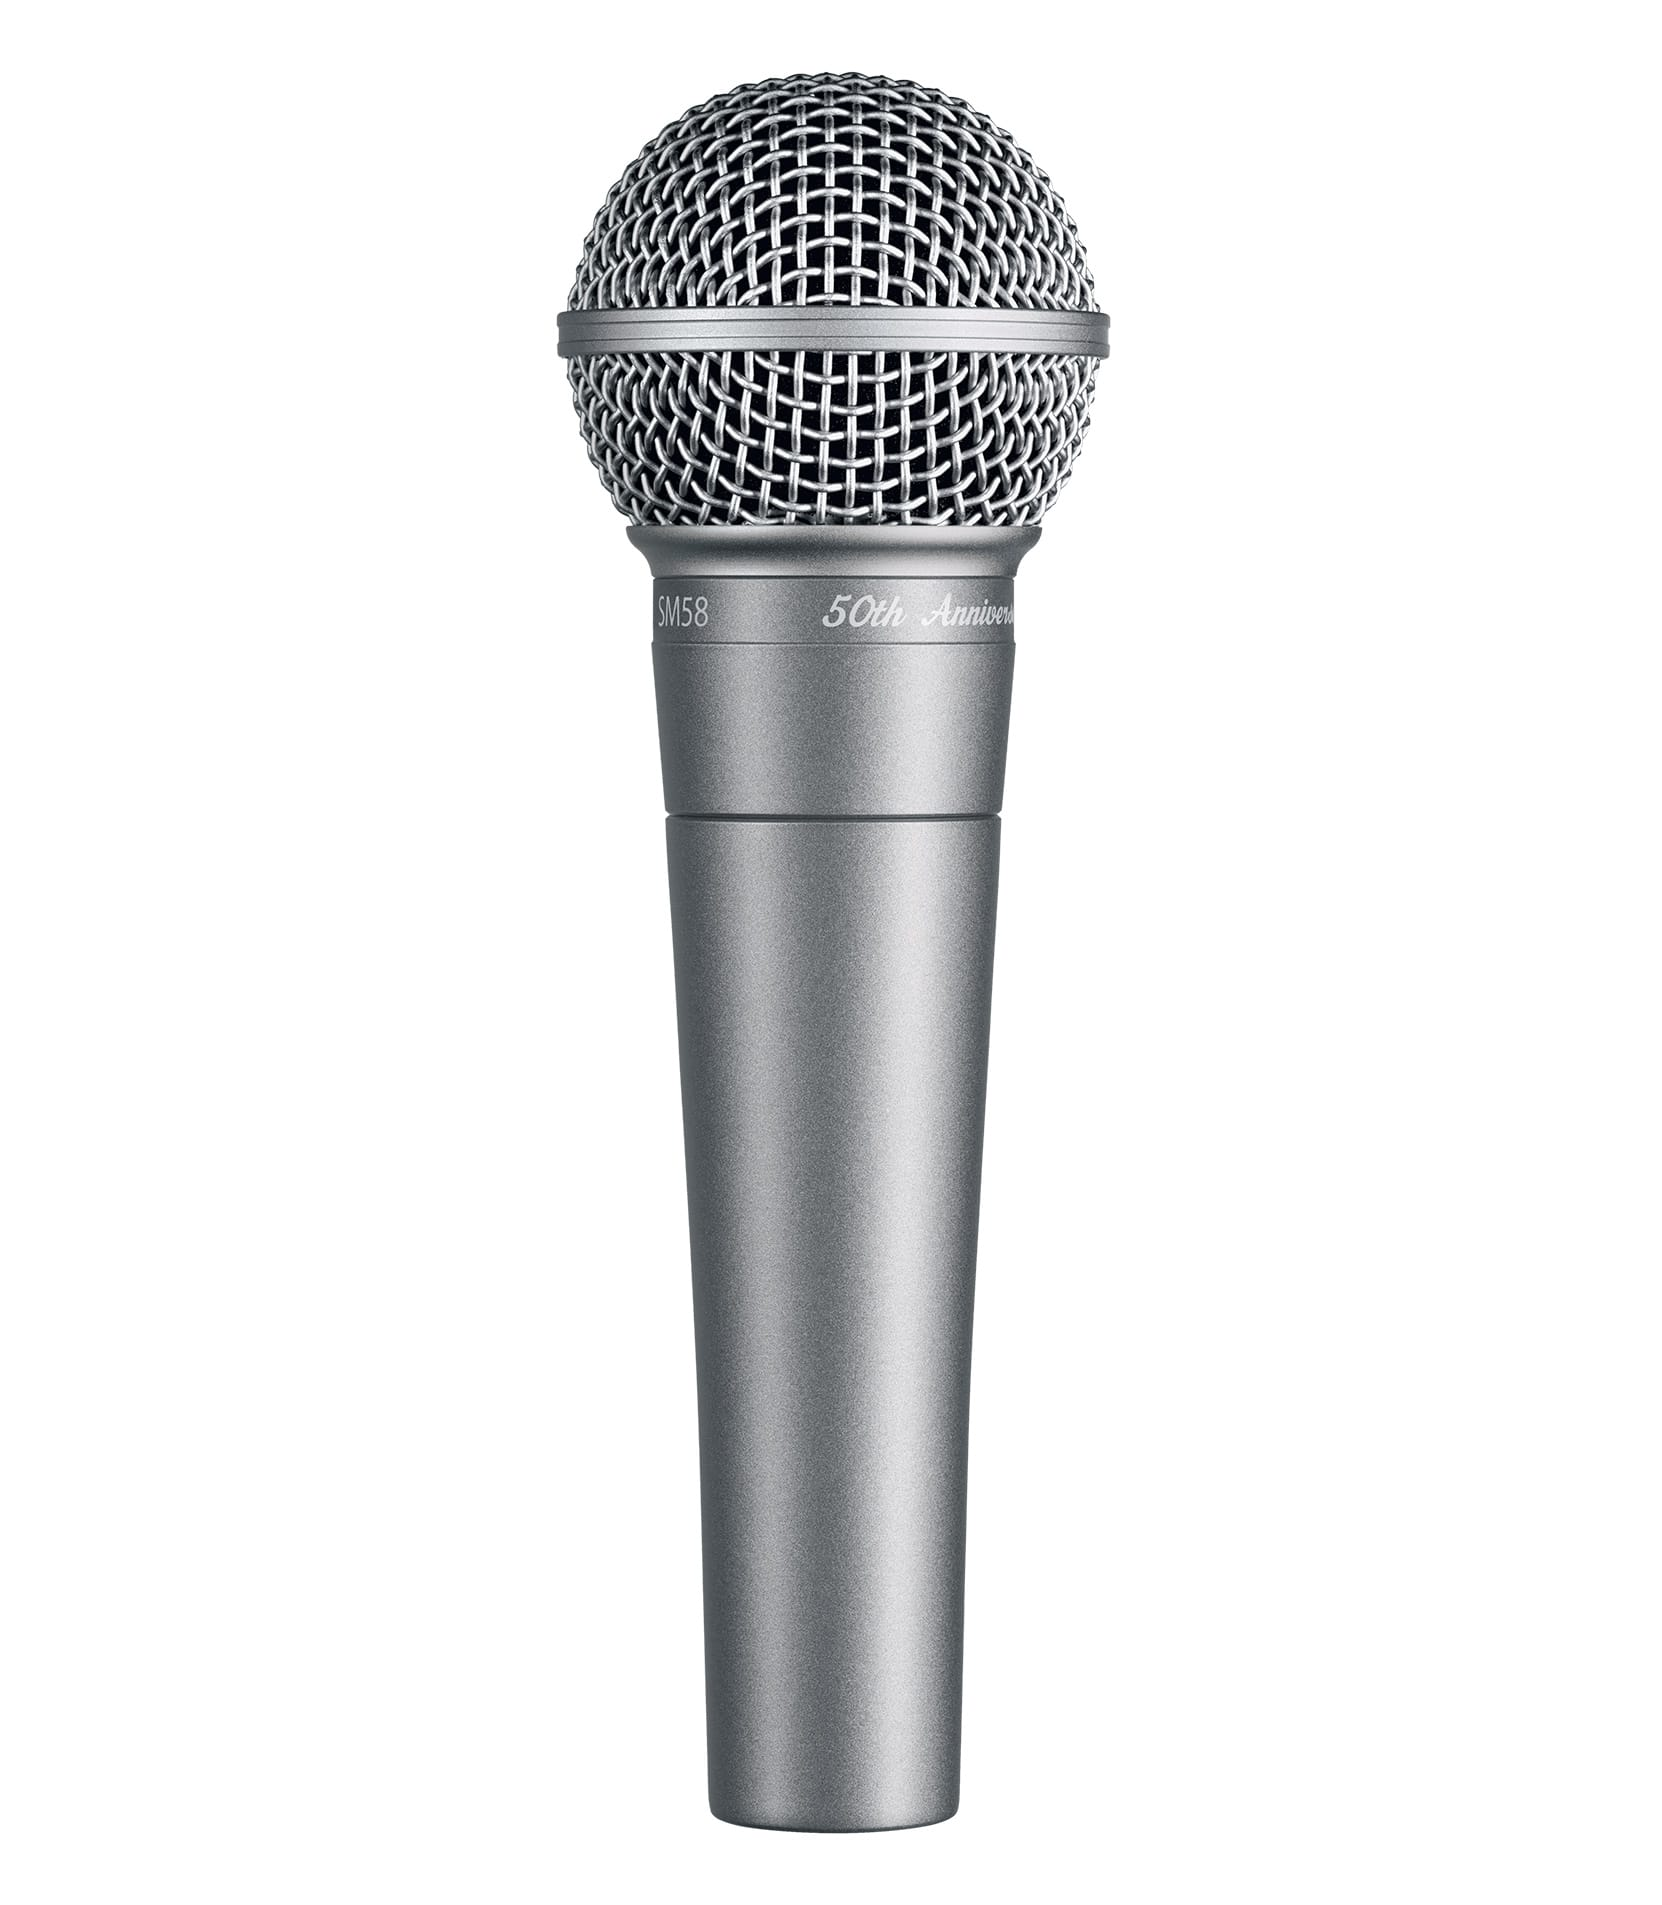 Buy Shure - SM58 50A 50th Anniversary Edition Vocal Microphone